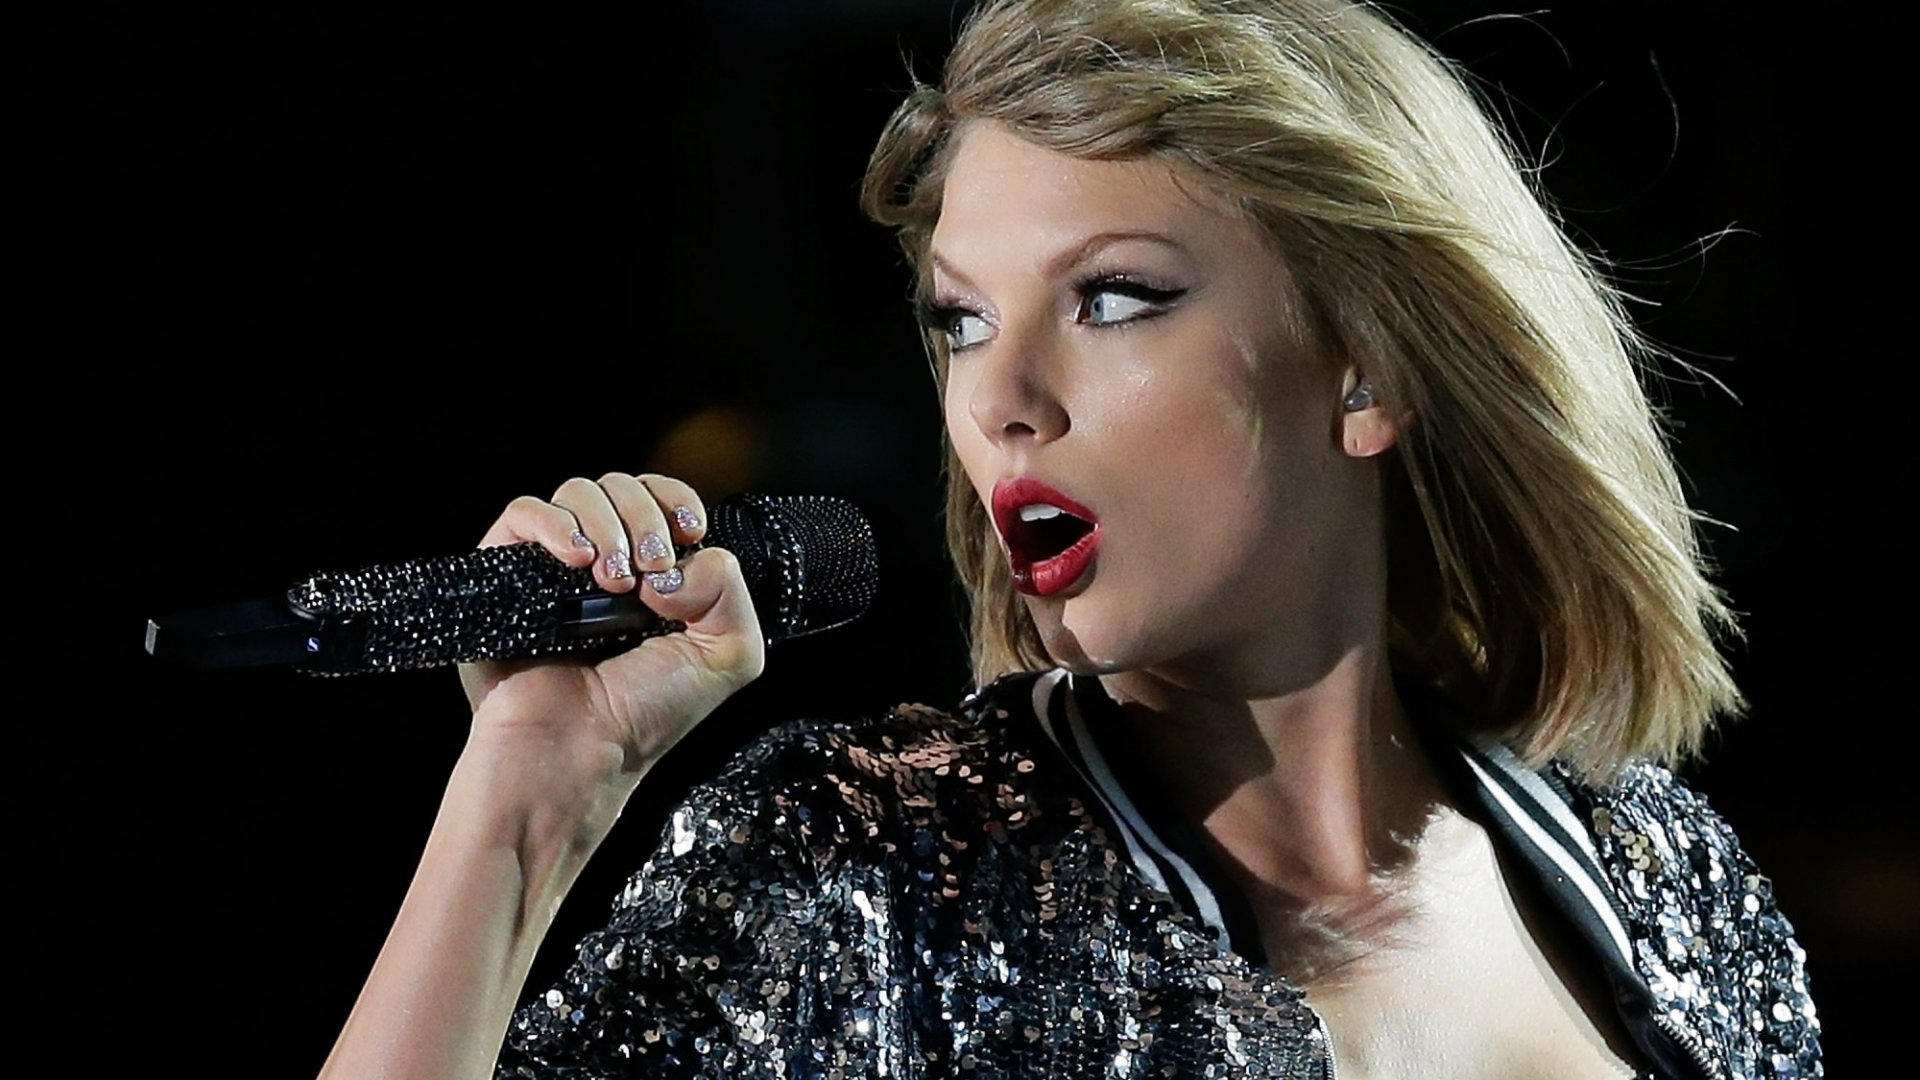 Taylor Swift to Sweep Grammys, According to Instagram